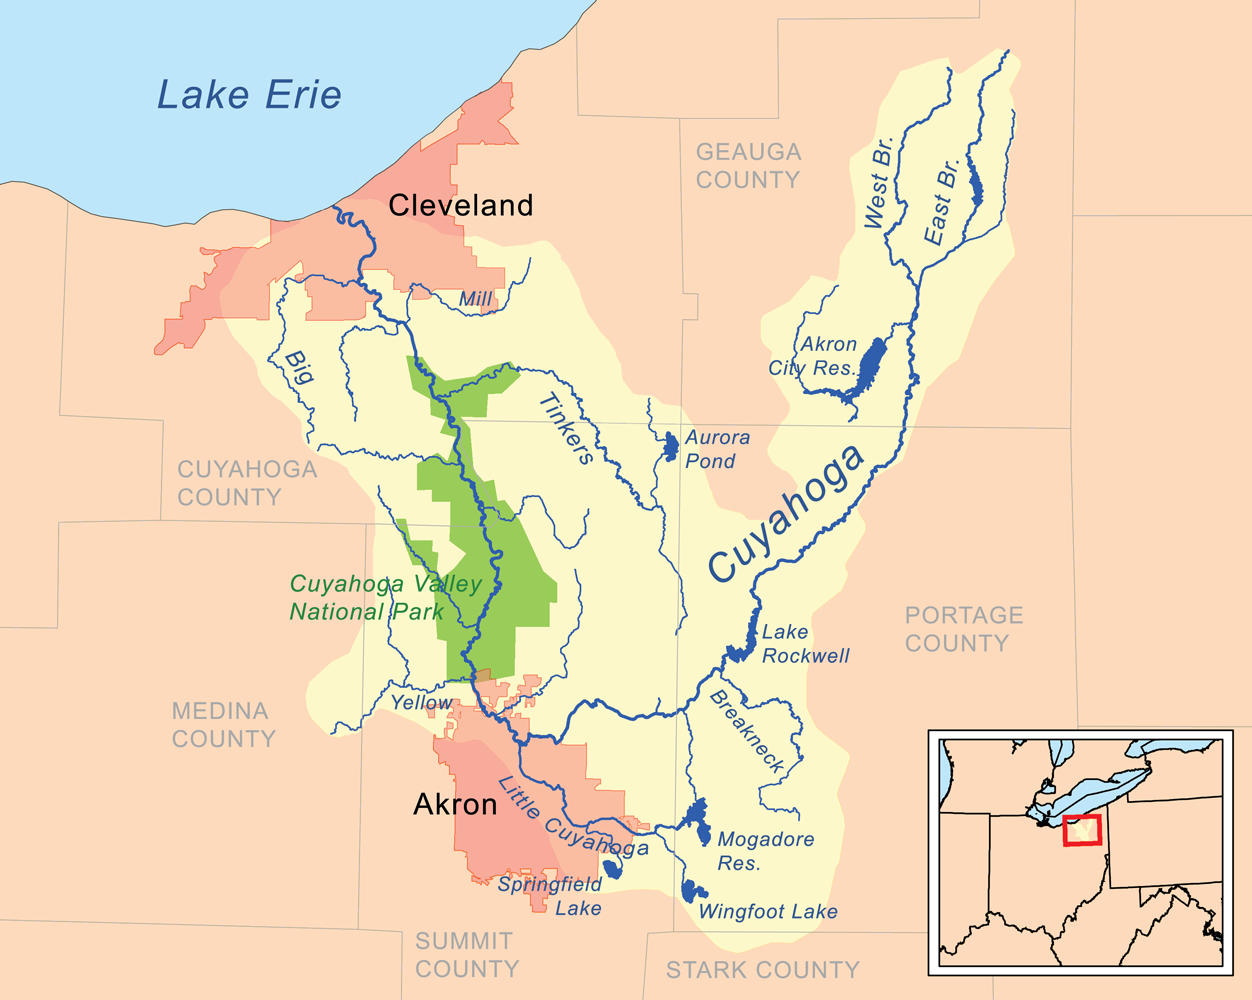 Cuyahogarivermap.png?noresize